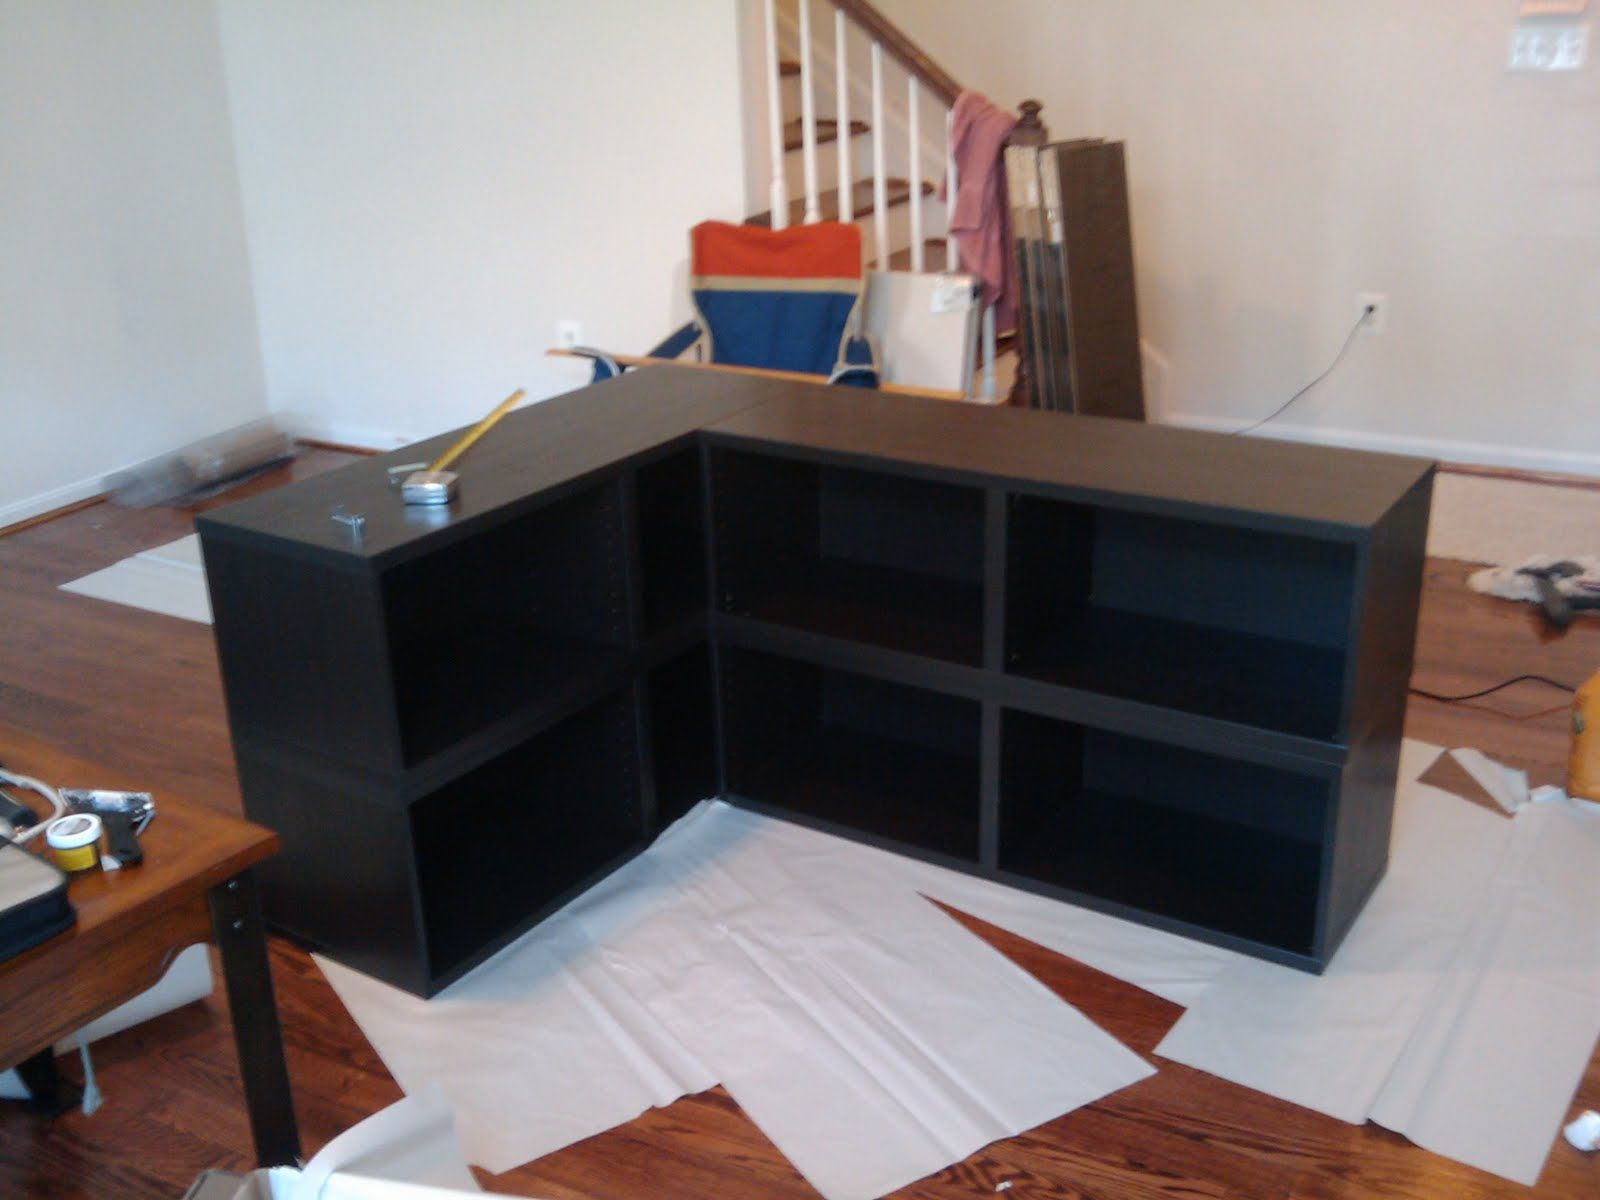 ikea hackers ikea l shaped dry bar ikea hacks pinterest dry bars ikea hackers and bar. Black Bedroom Furniture Sets. Home Design Ideas